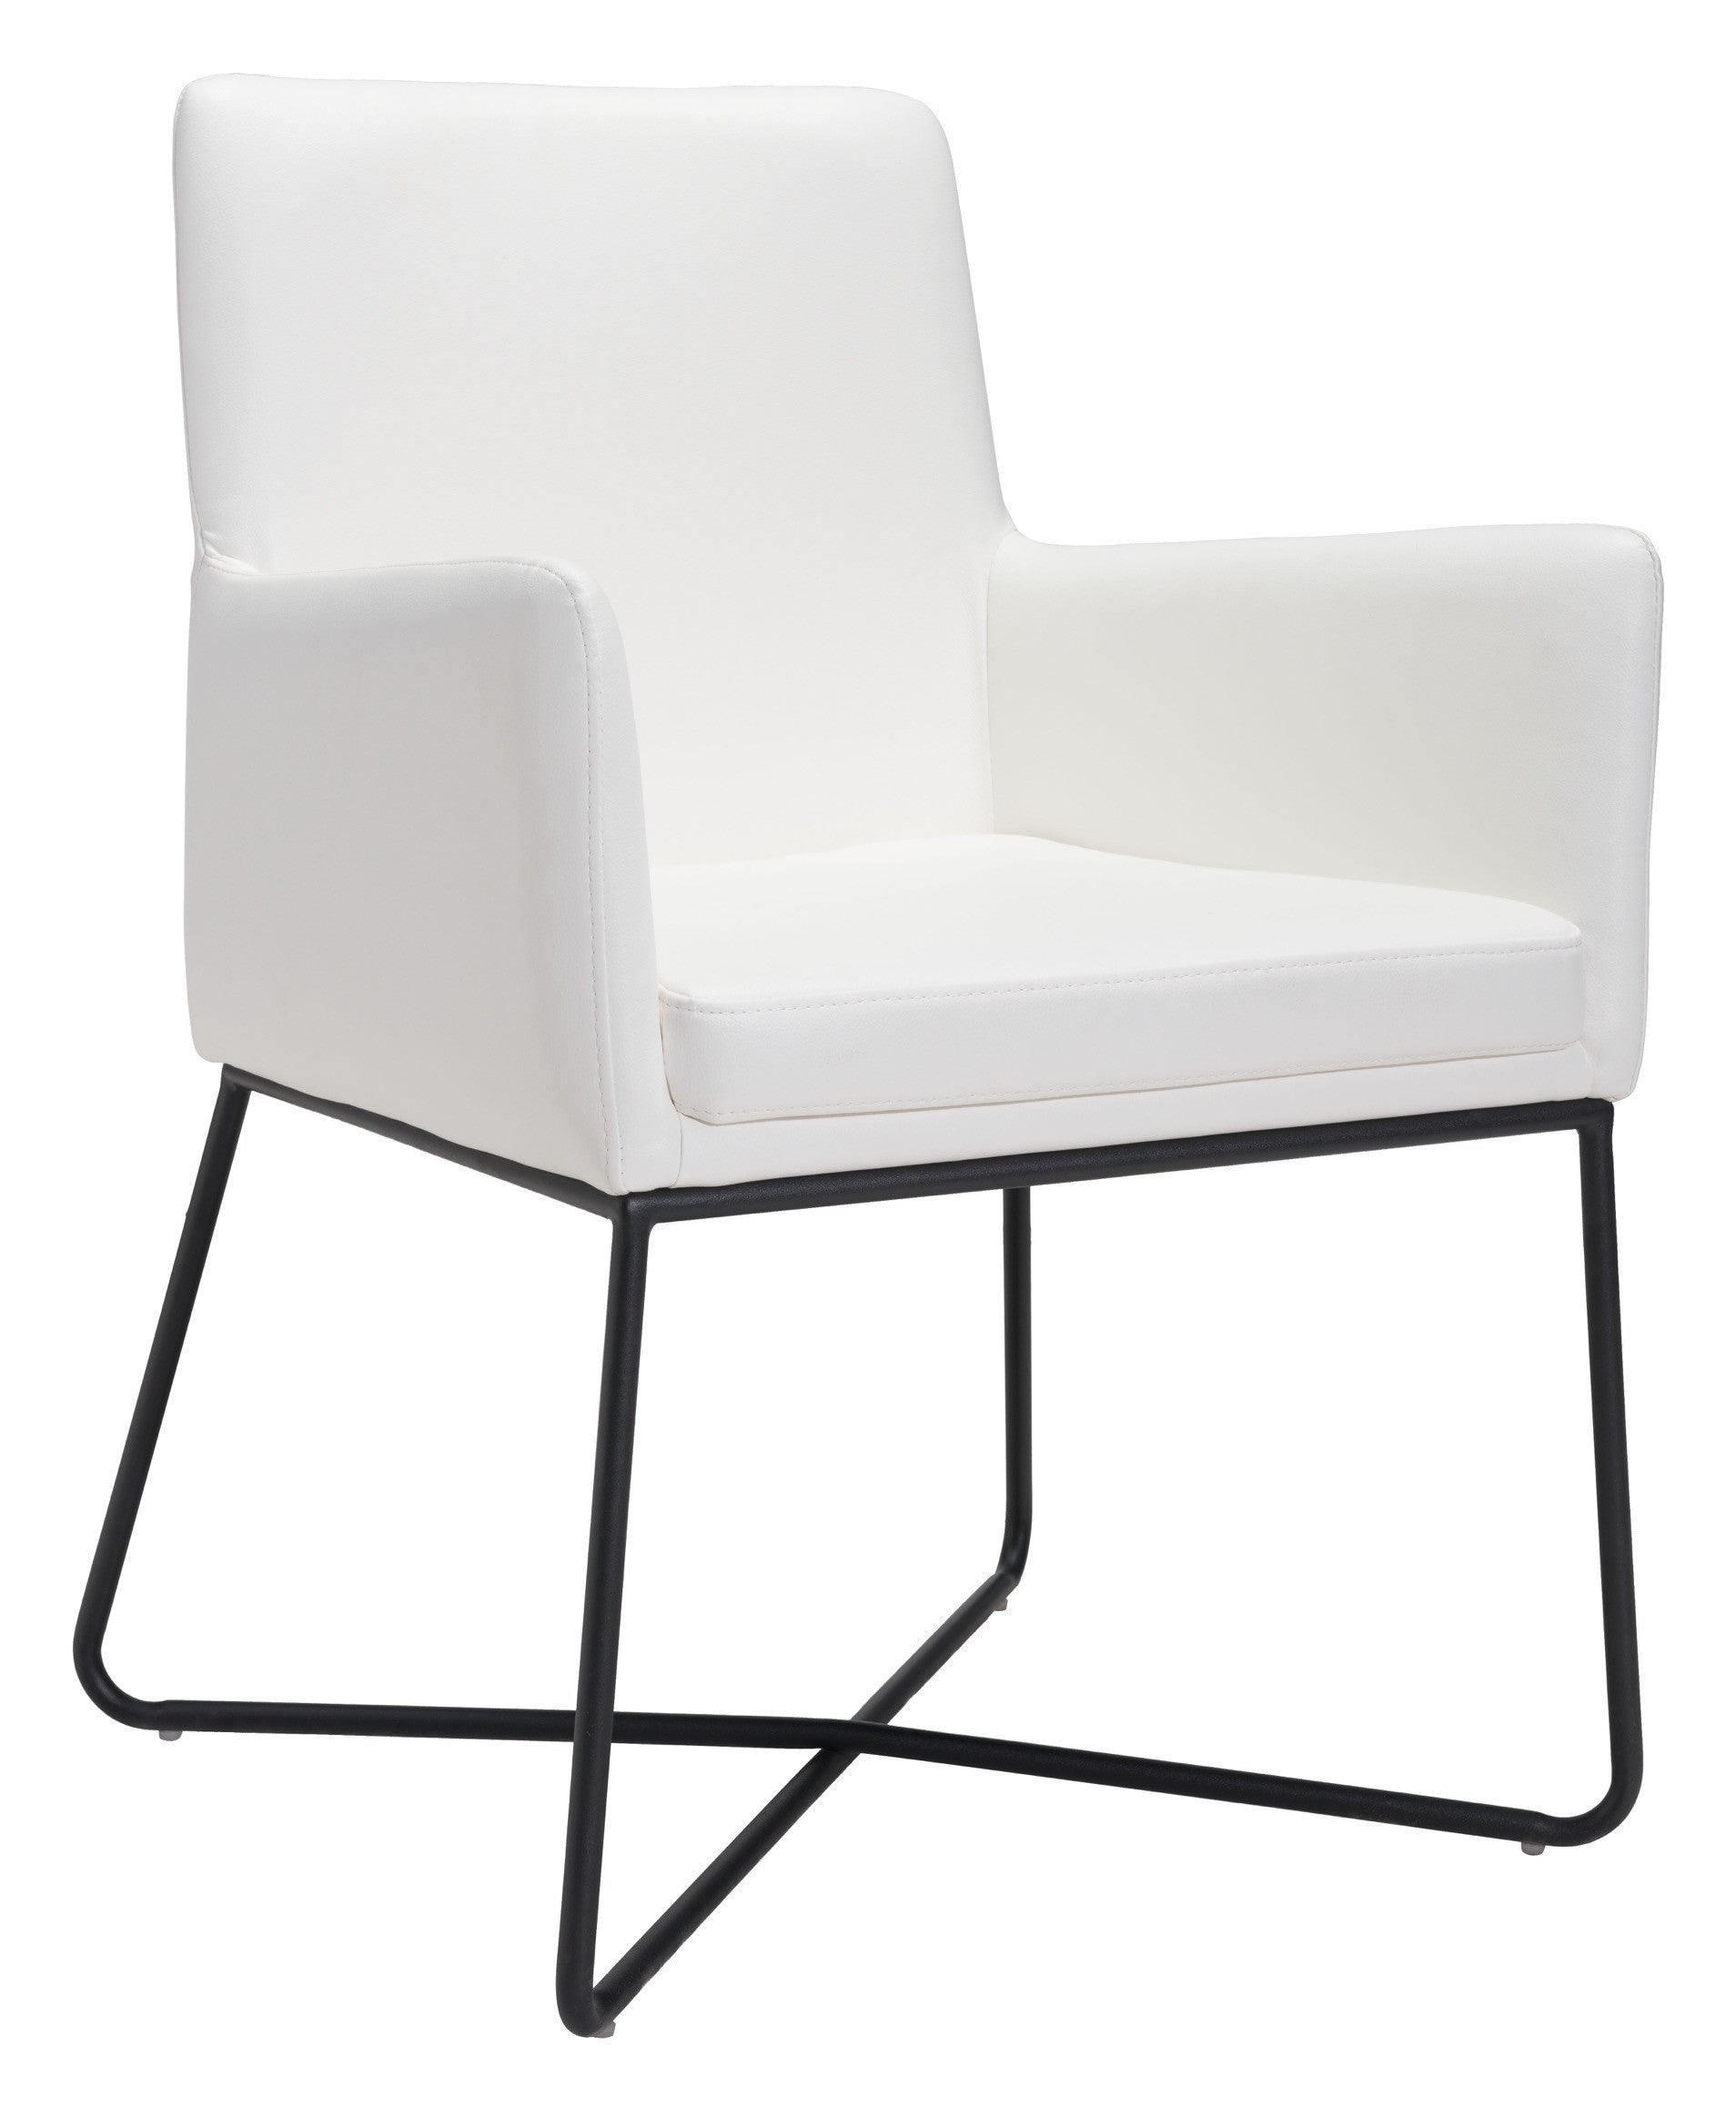 White Accent Chairs Used.Axel Lounge Chair In White Leatherette On Painted Steel Frame